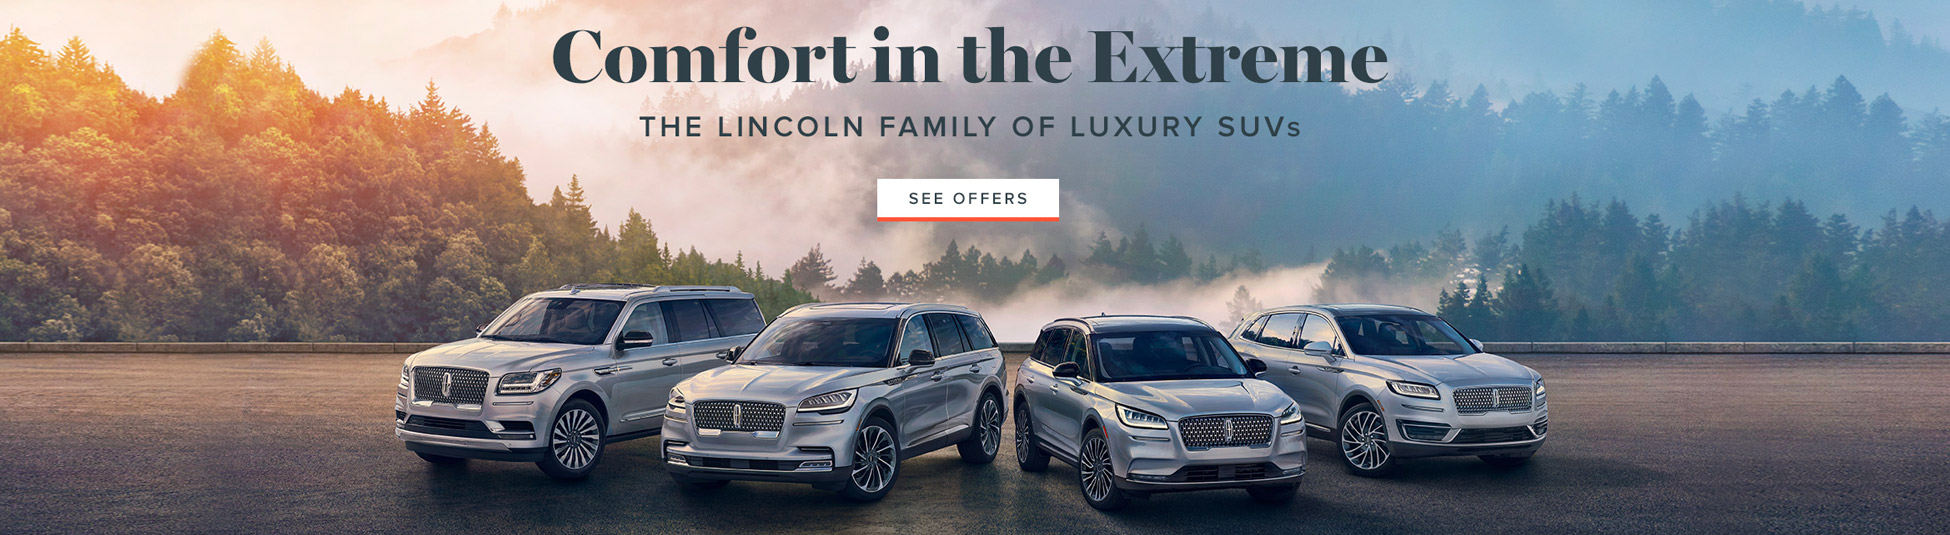 Comfort in the Extreme - See Offers from the Lincoln Family of Luxury